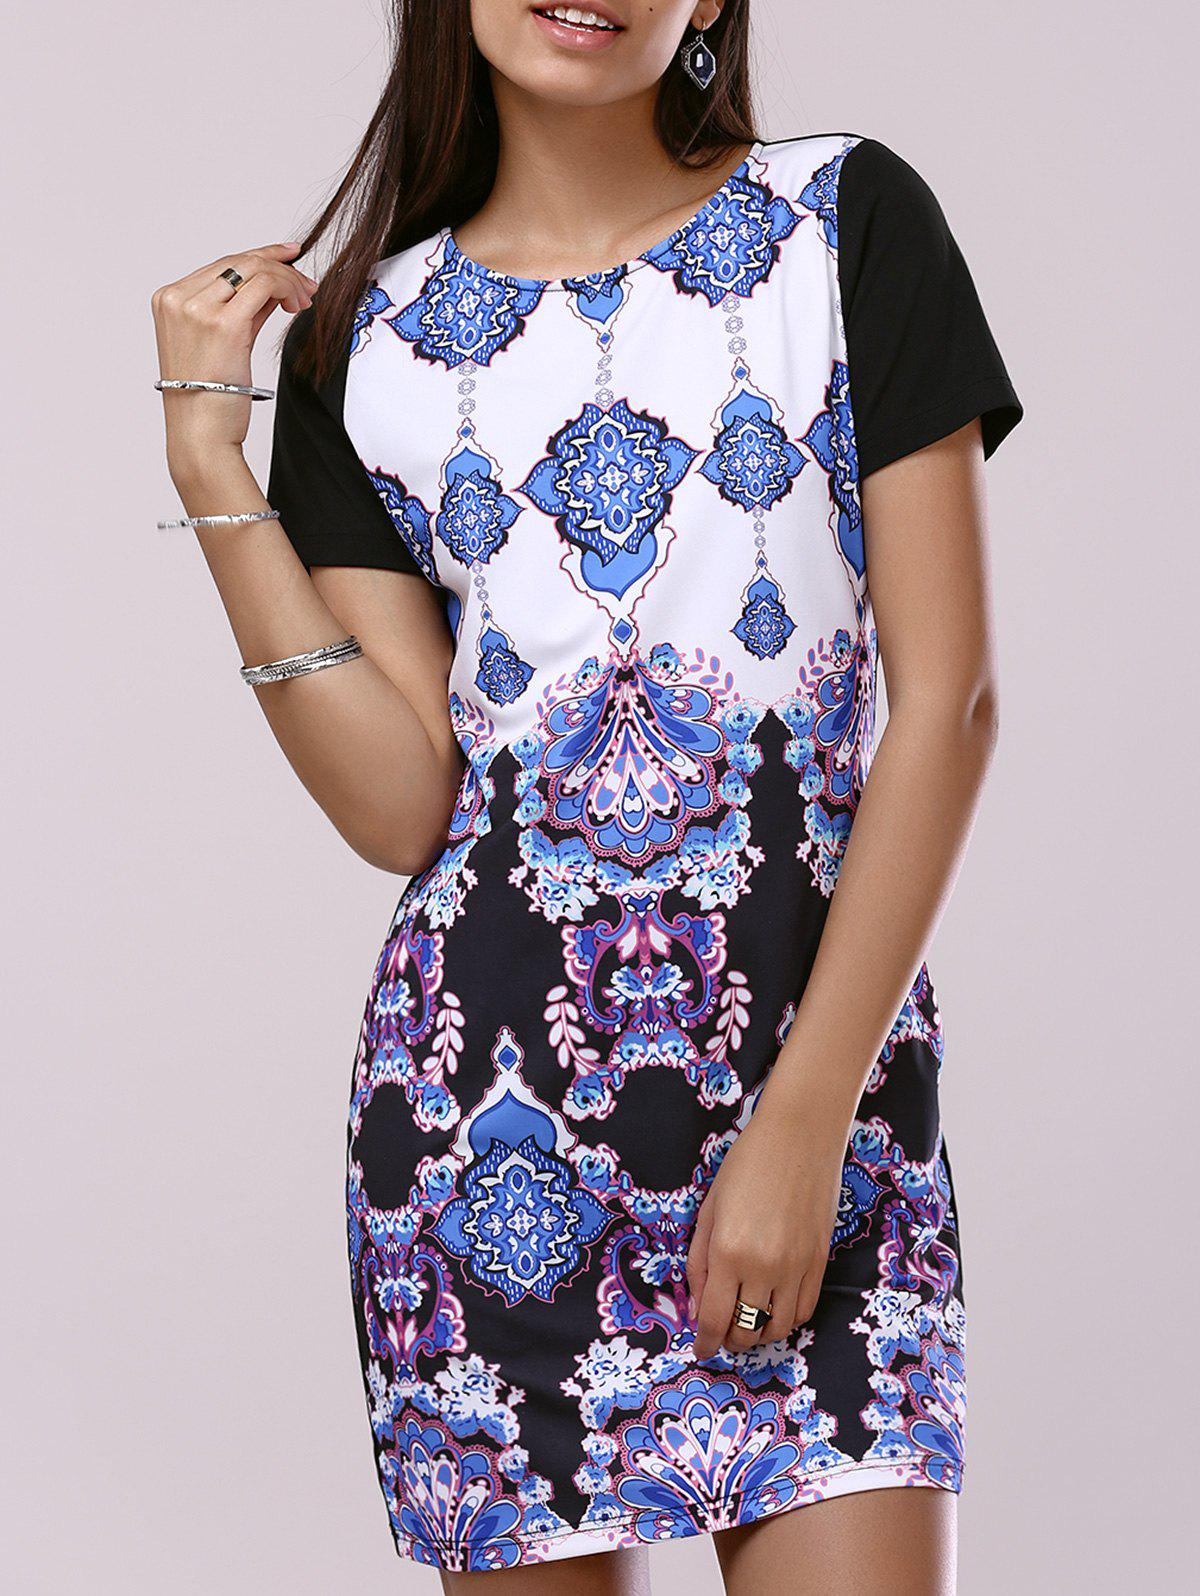 Fashionable Woman's Short Sleeve Scoop Neck Printing Dress - COLORMIX XL